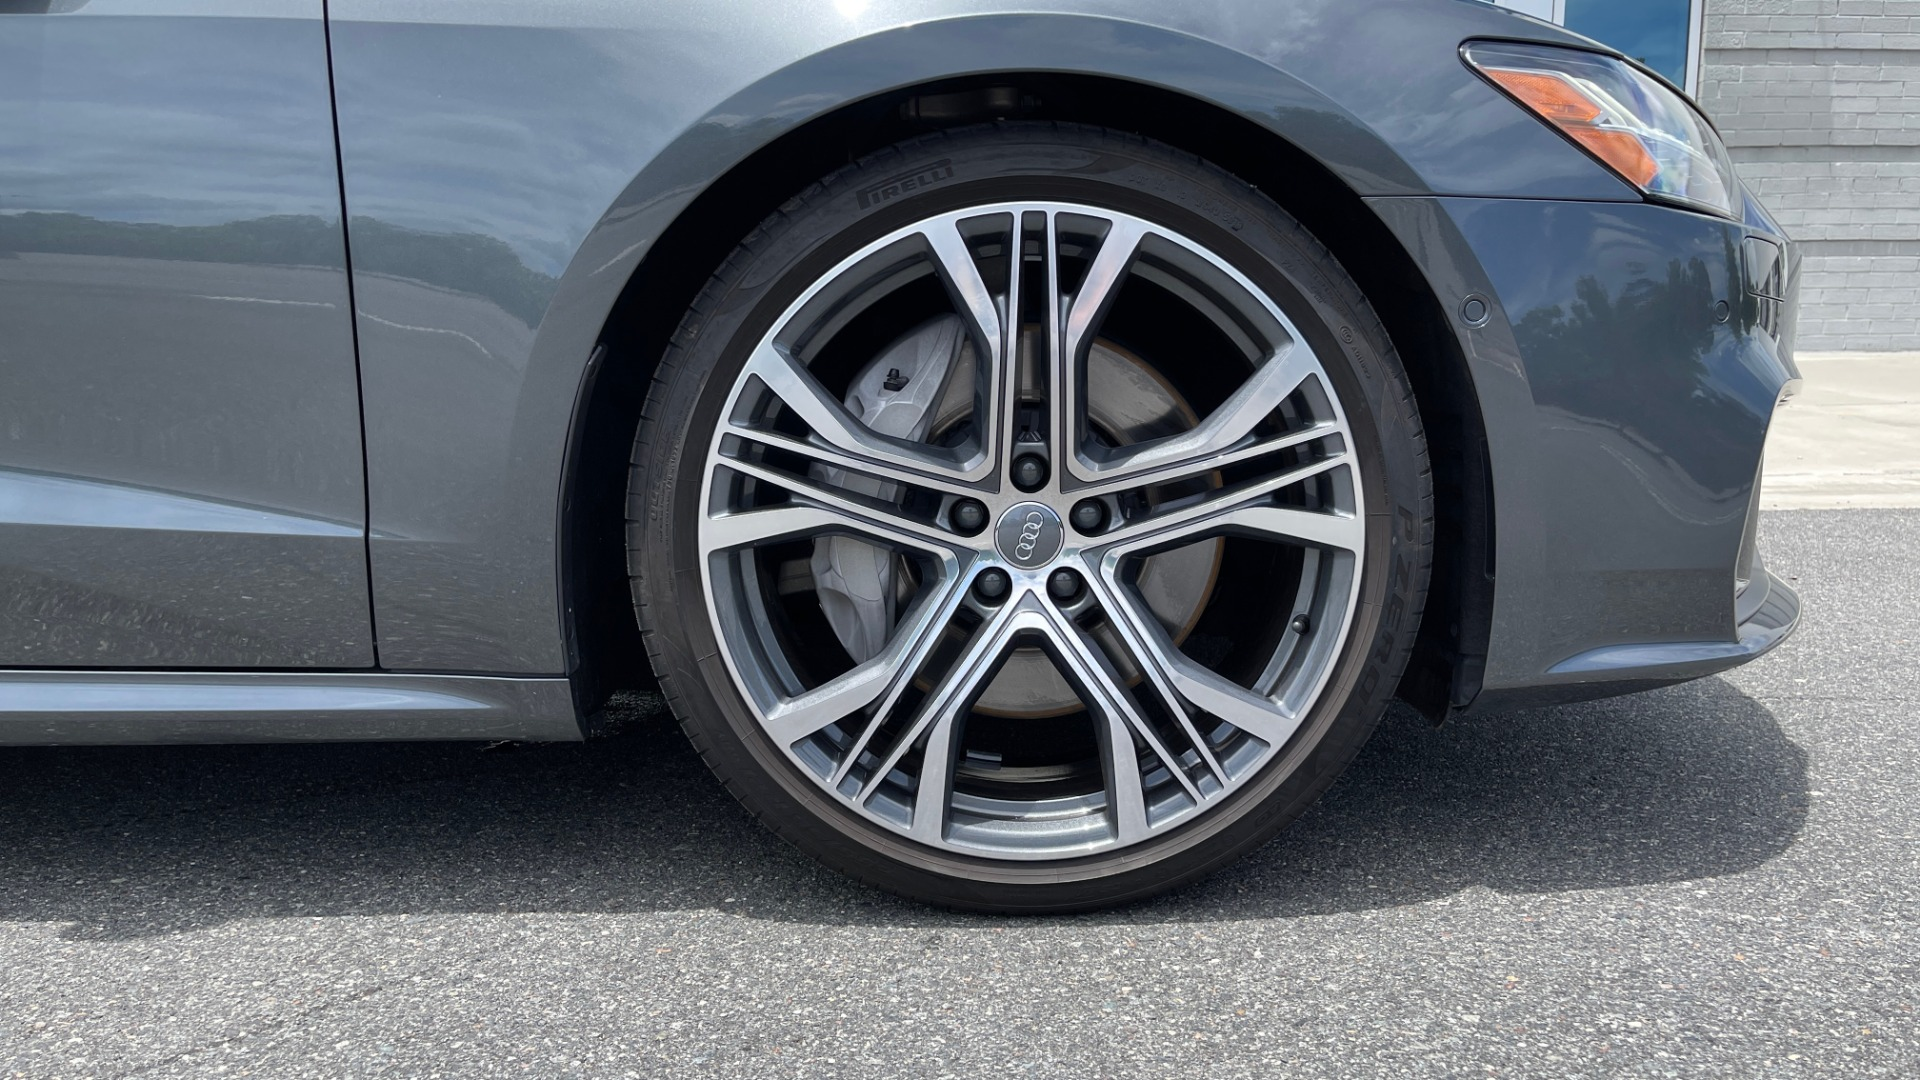 Used 2019 Audi A7 PRESTIGE 55 TFSI 3.0T / NAV / B&O SND / SUNROOF / S-LINE / 21IN WHLS / REAR for sale $66,995 at Formula Imports in Charlotte NC 28227 83